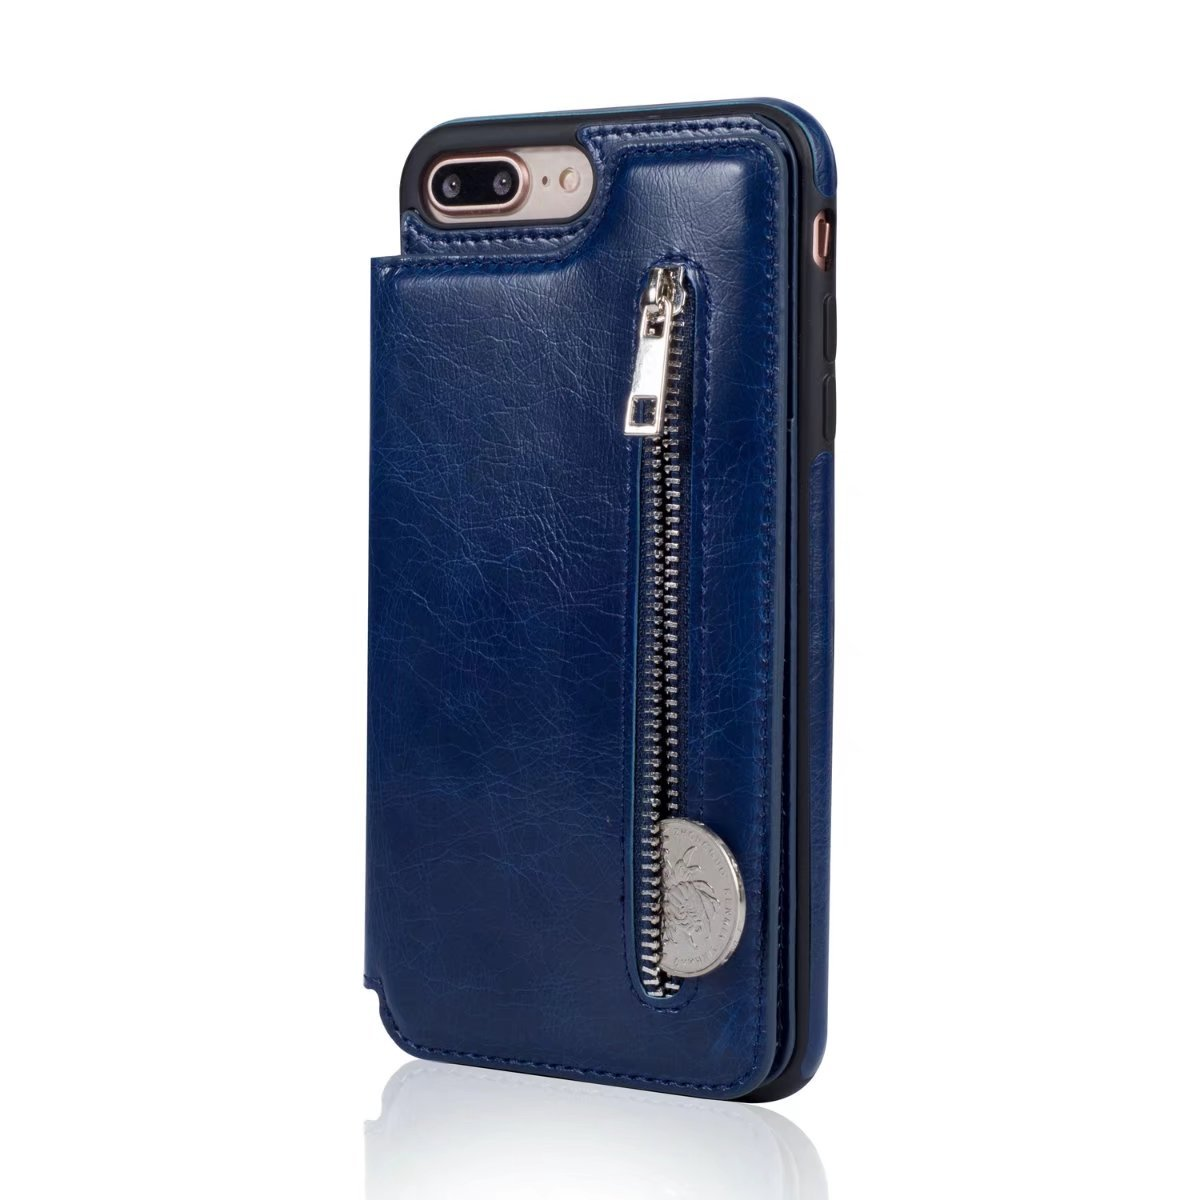 Abtory iPhone 8 Plus Case, Wallet Case with Credit Card Holder Slim Leather Shockproof Protective Hybrid Case with Stand Phone Case for iPhone 7 Plus/iPhone 8 Plus Blue by Abtory (Image #3)